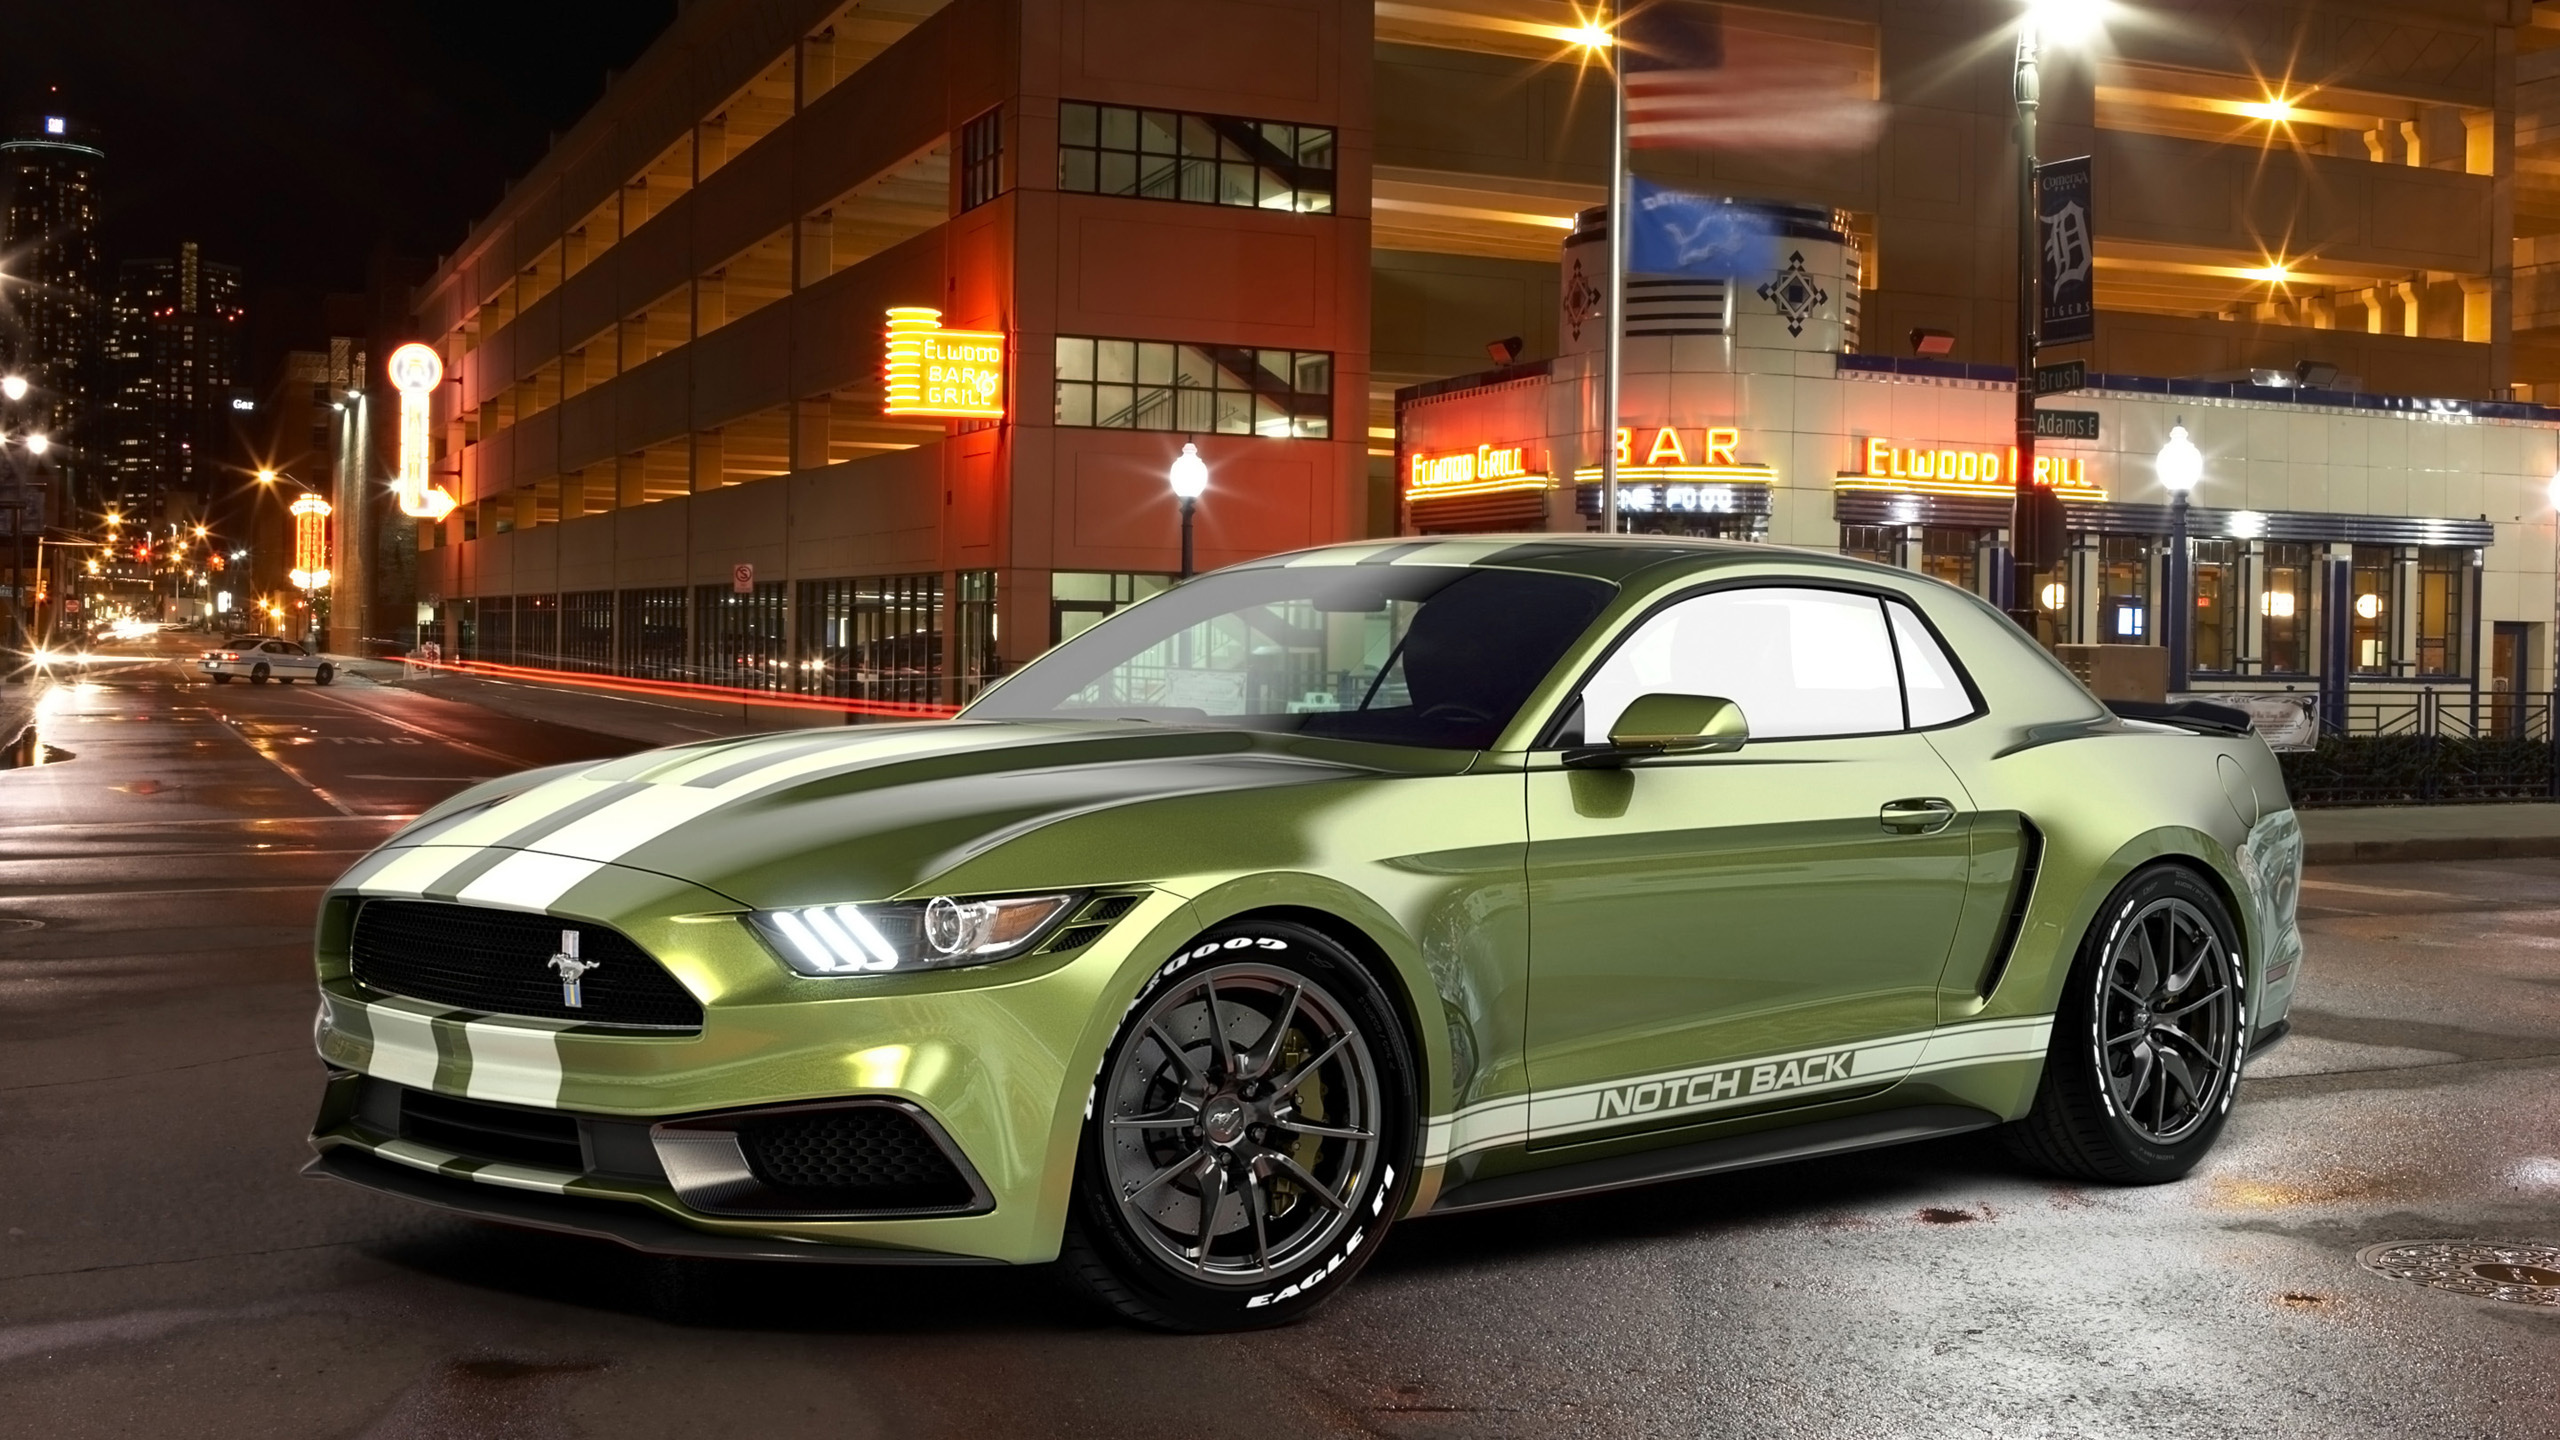 2017 Ford Mustang NotchBack Design 3 Wallpaper | HD Car ...